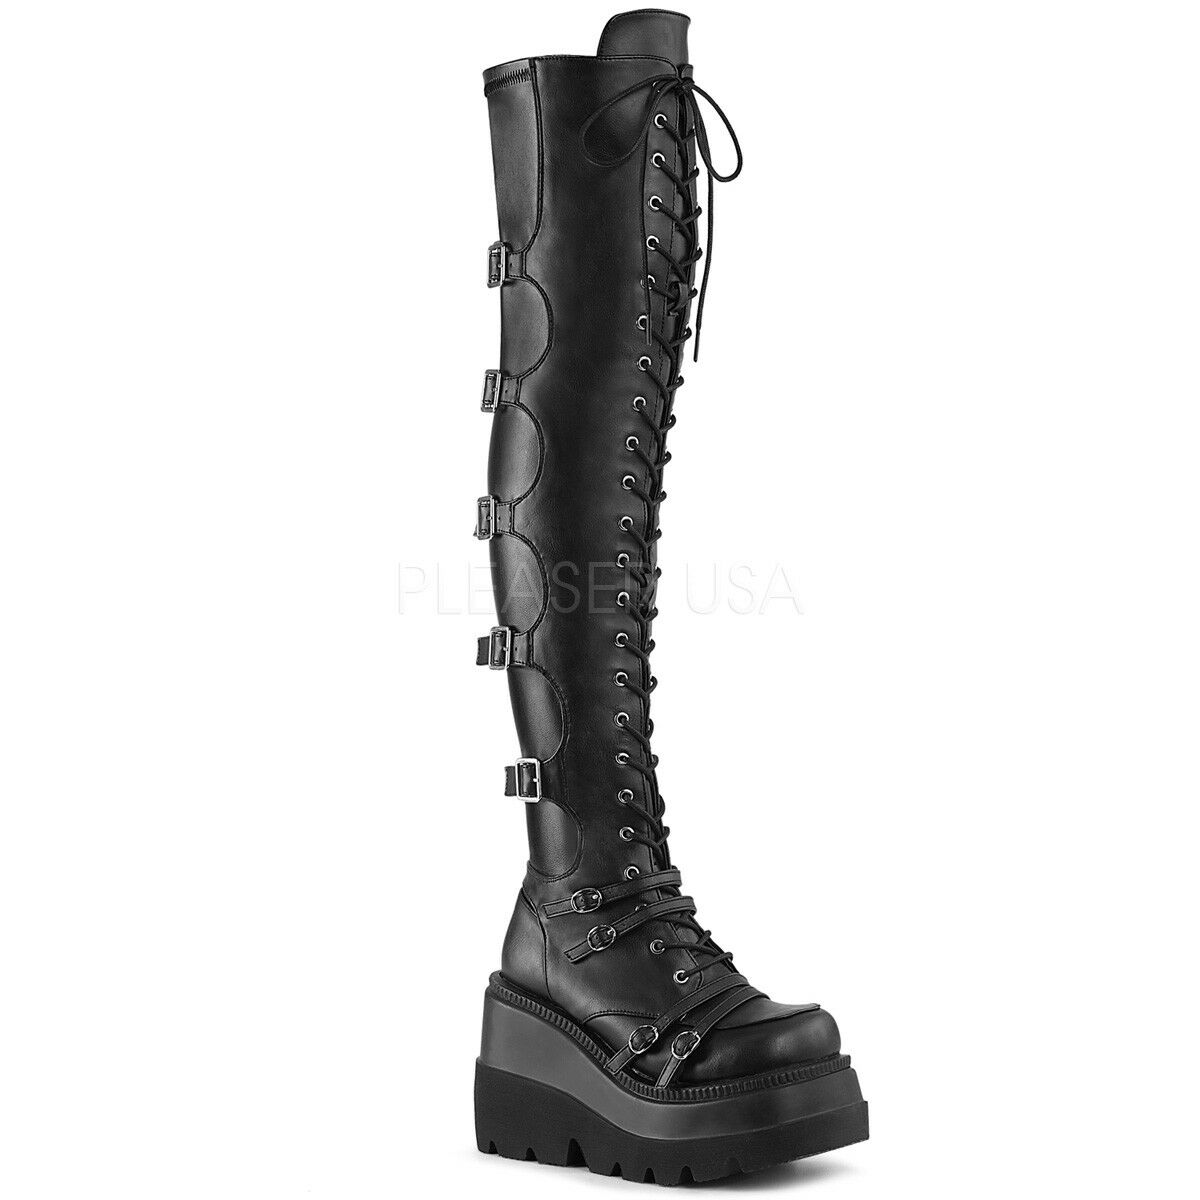 edizione limitata SHAKER-350   PUNK GOTH FRONT LACE UP MULTI BUCKLE BUCKLE BUCKLE SOFT STRETCH THIGH HIGH  avvio  vendita outlet online